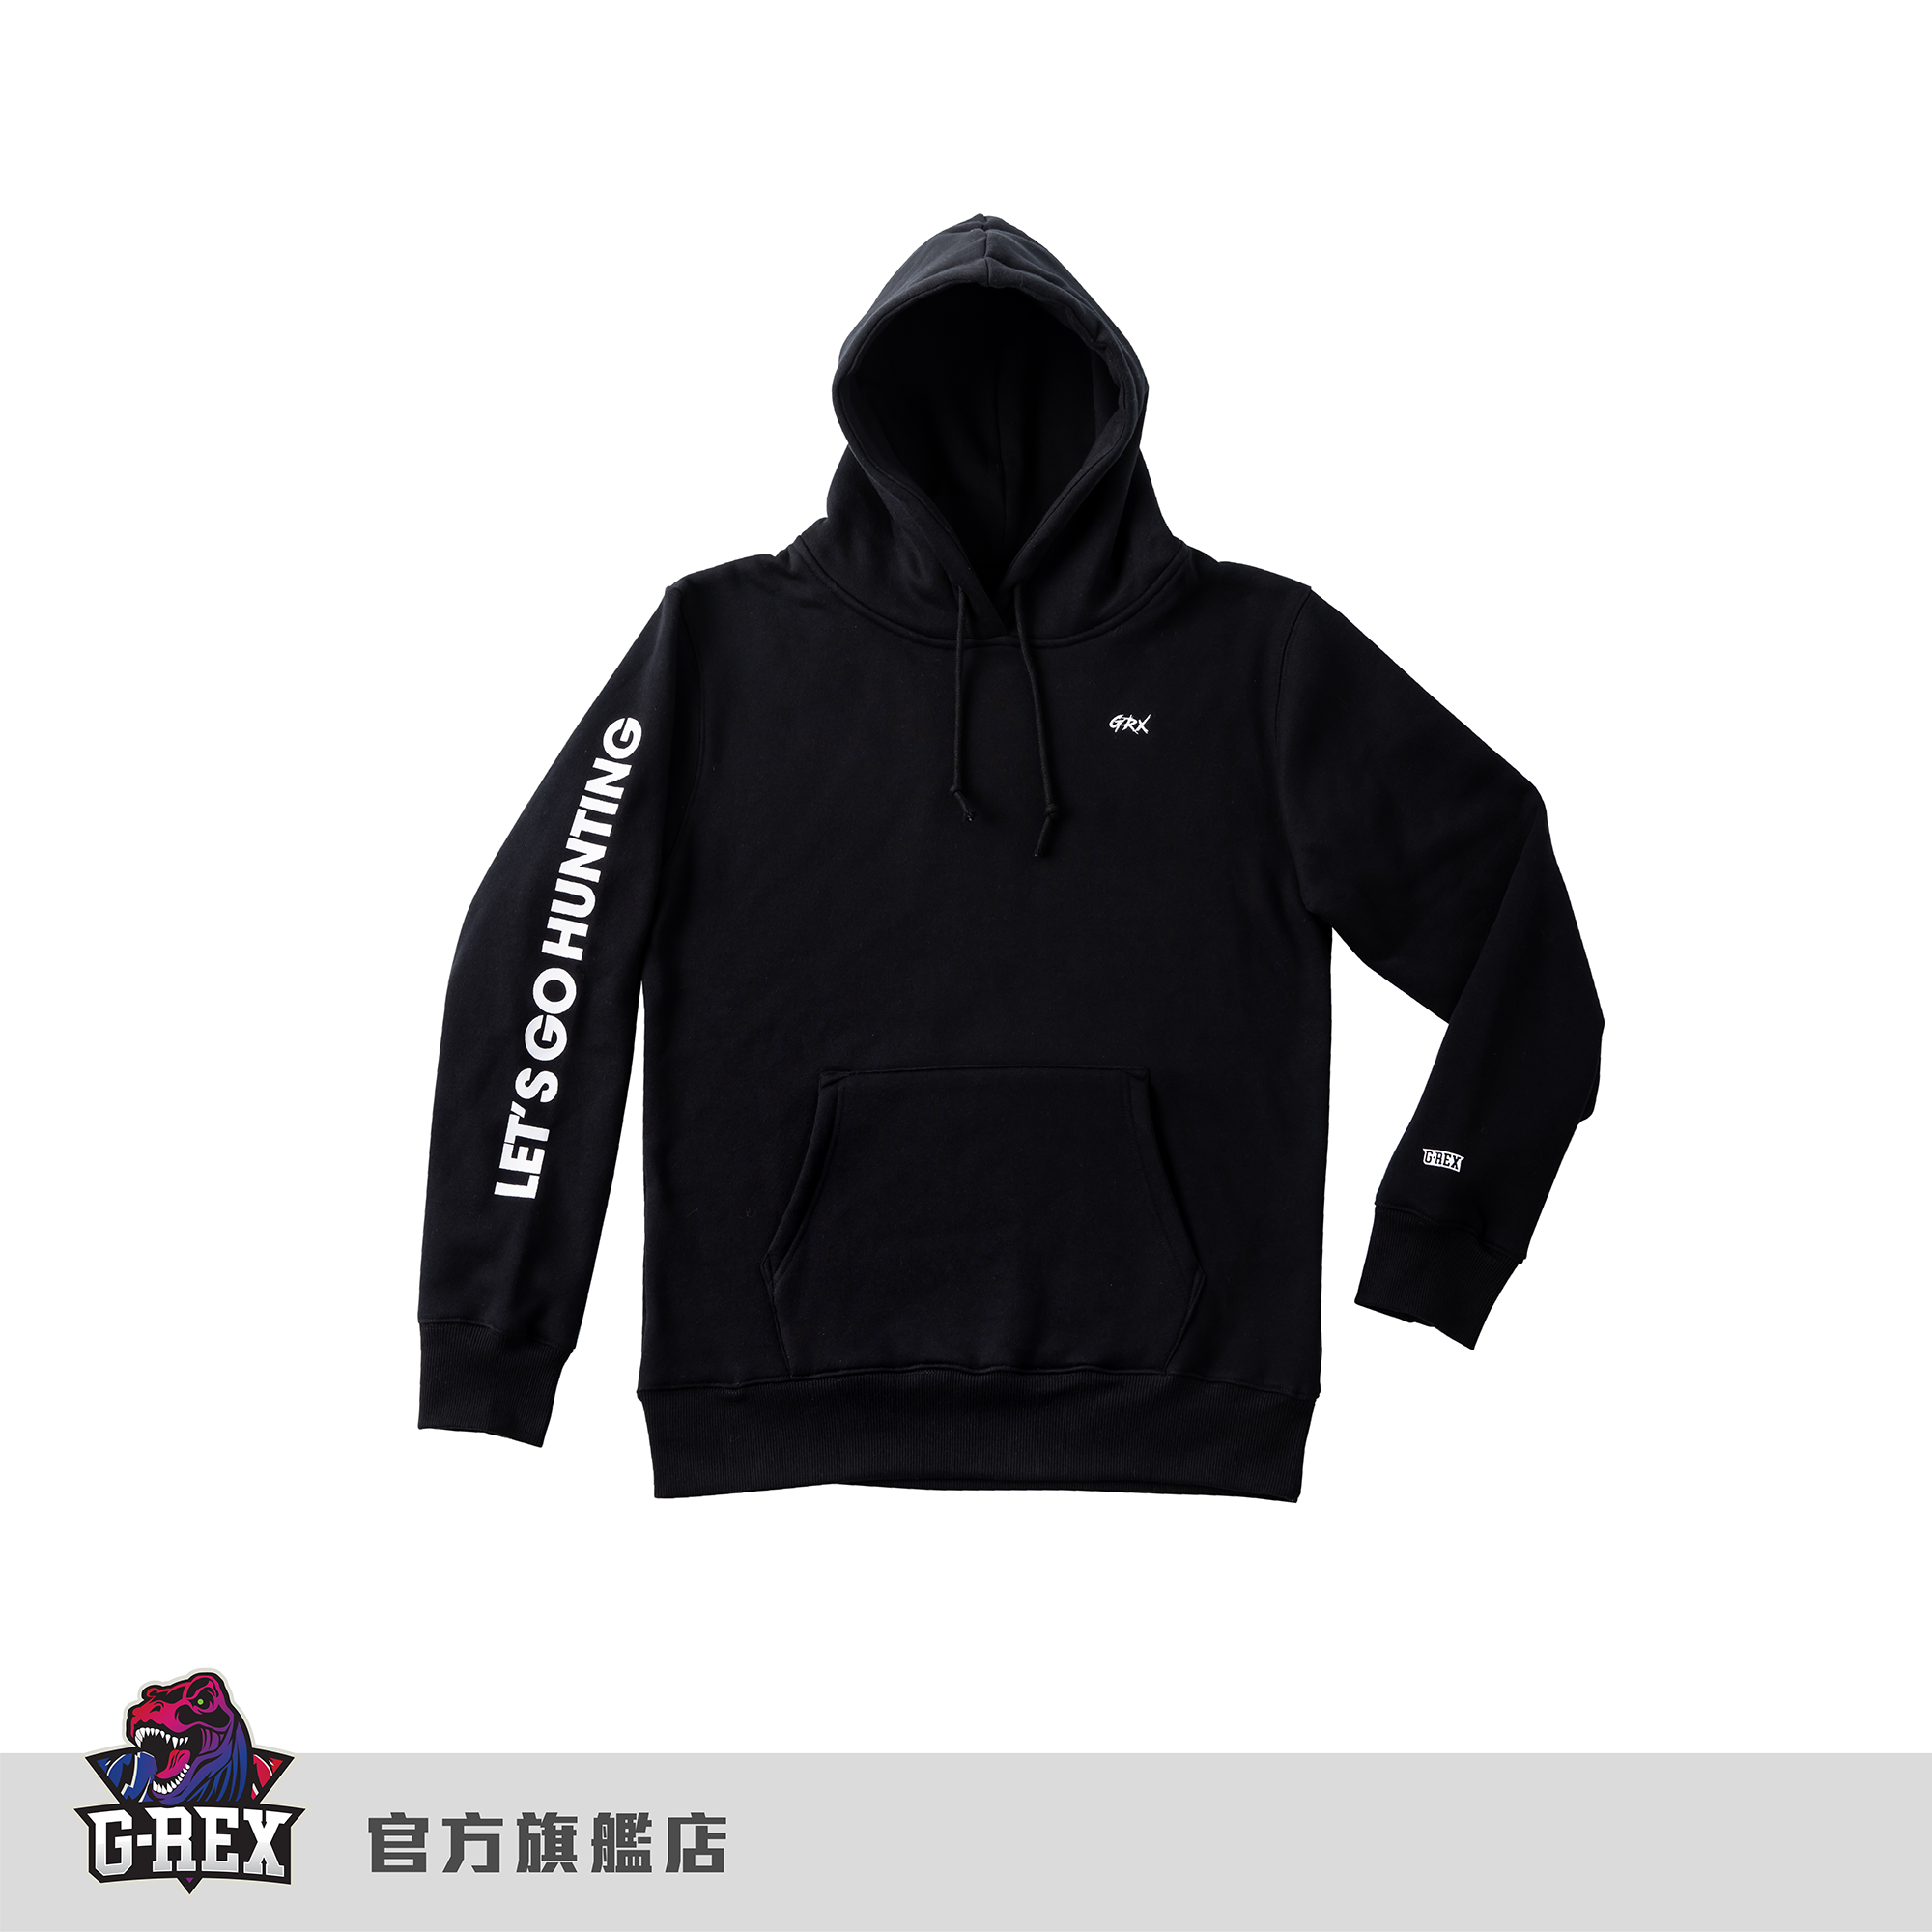 shopee_product_0603-33.png